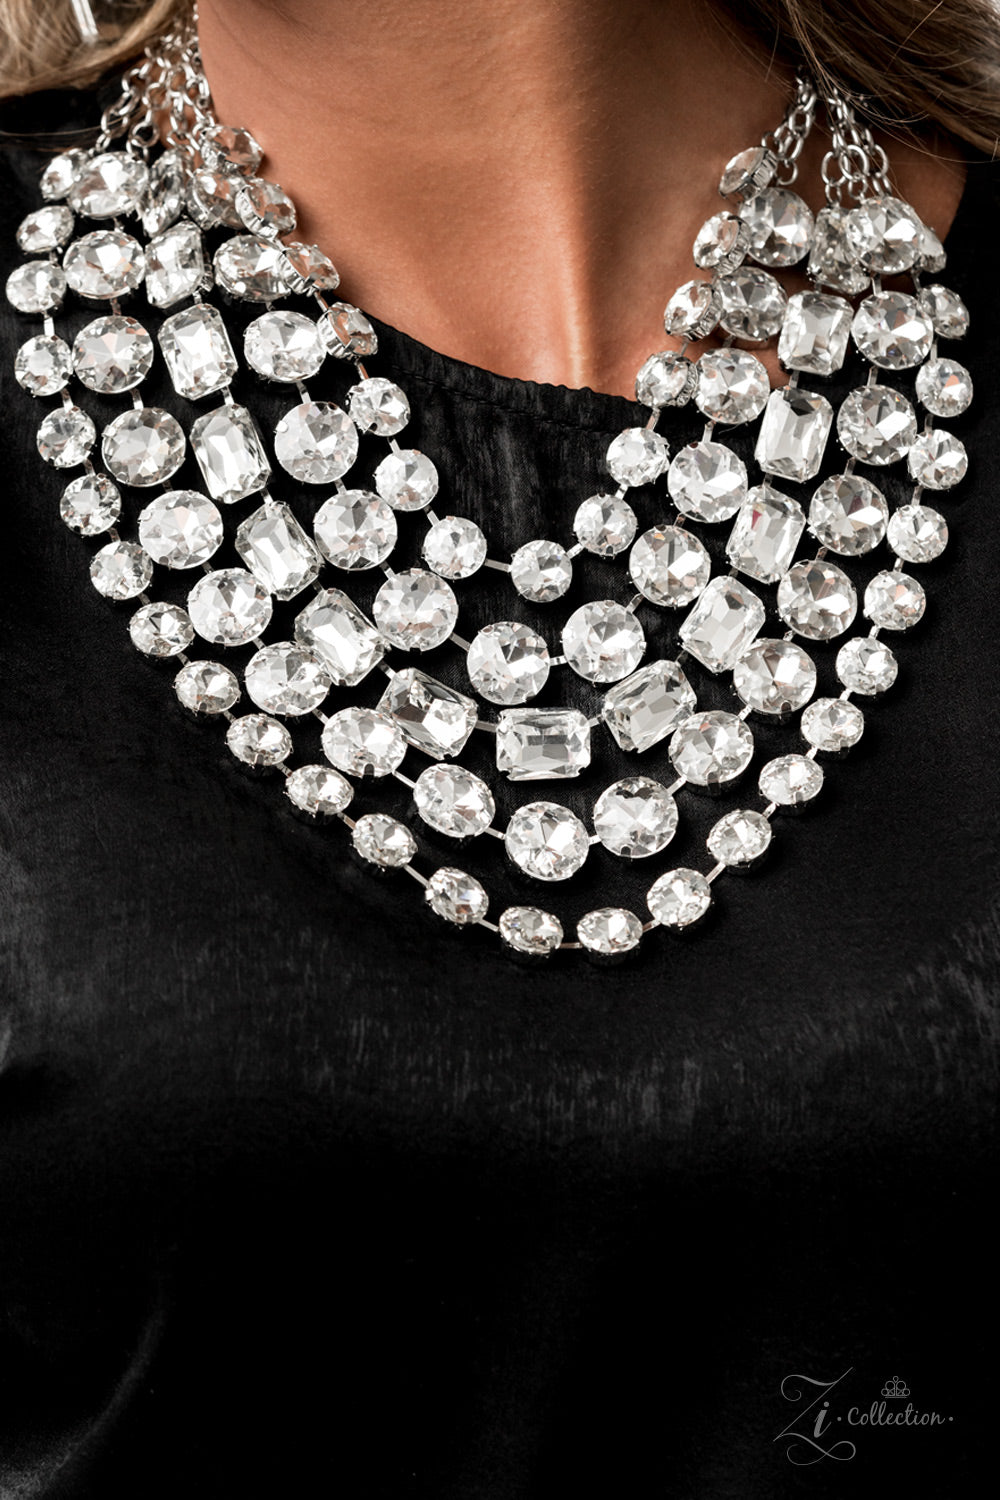 Paparazzi Jewelry & Accessories - Irresistible - Zi Collection. Bling By Titia Boutique